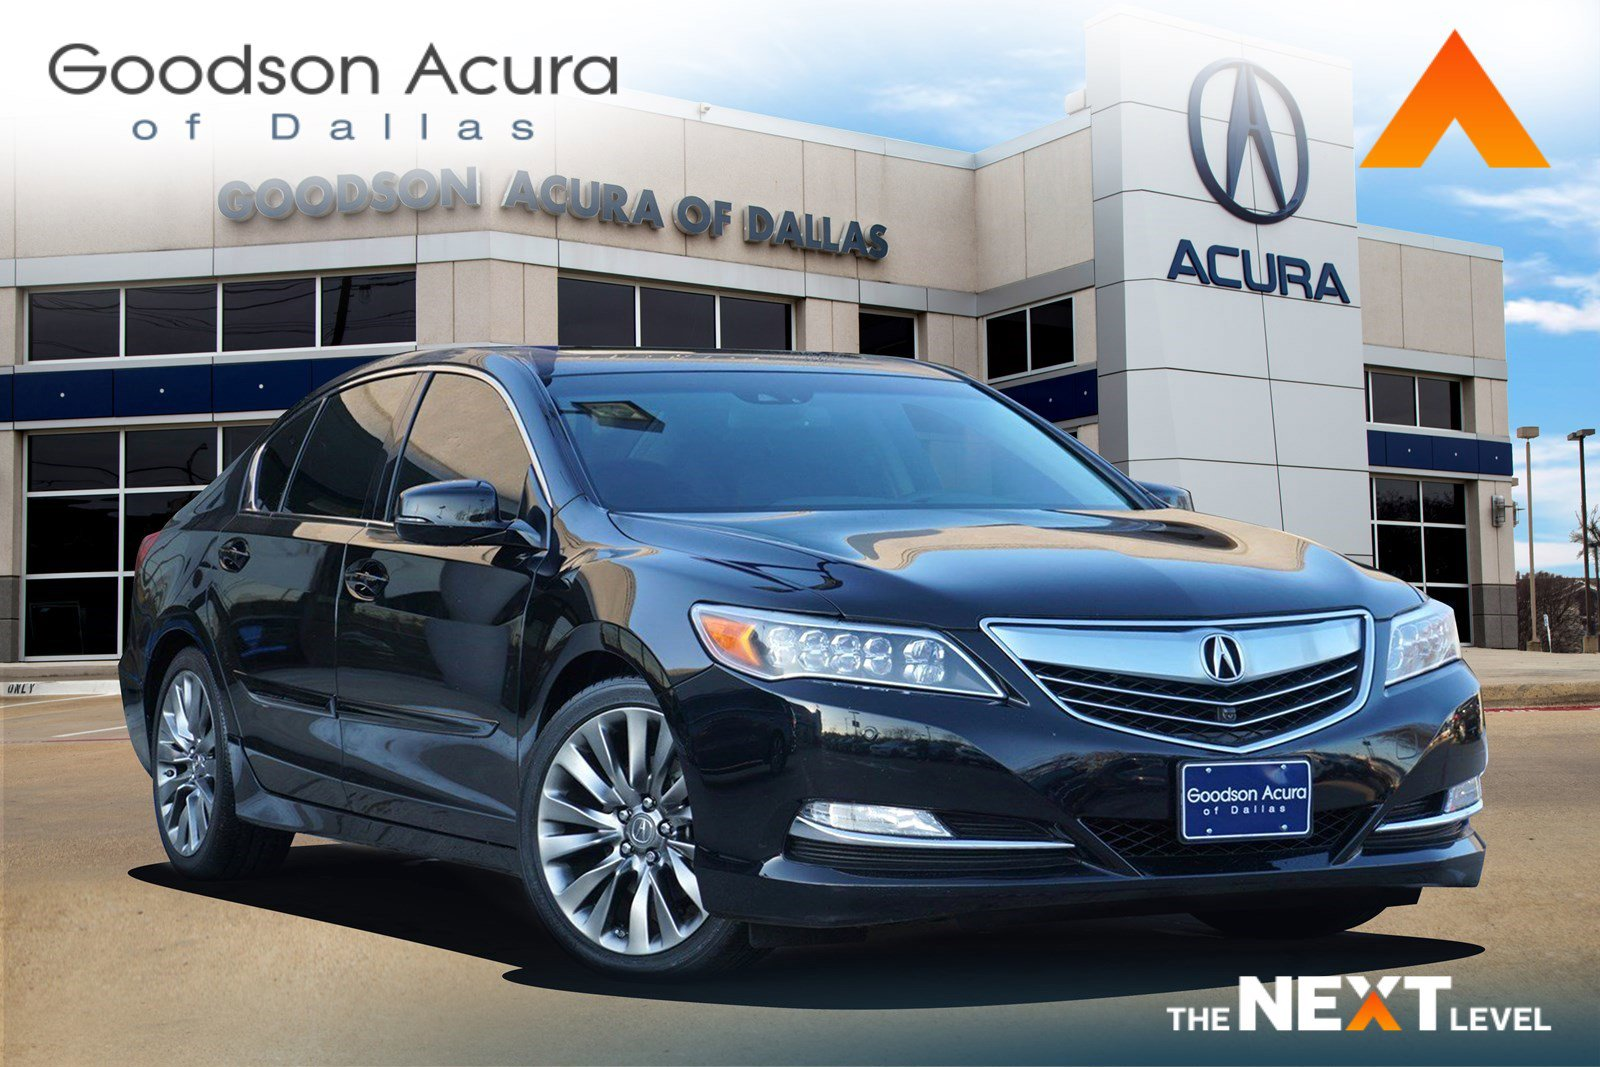 2016 Acura RLX w/ Advance Package image